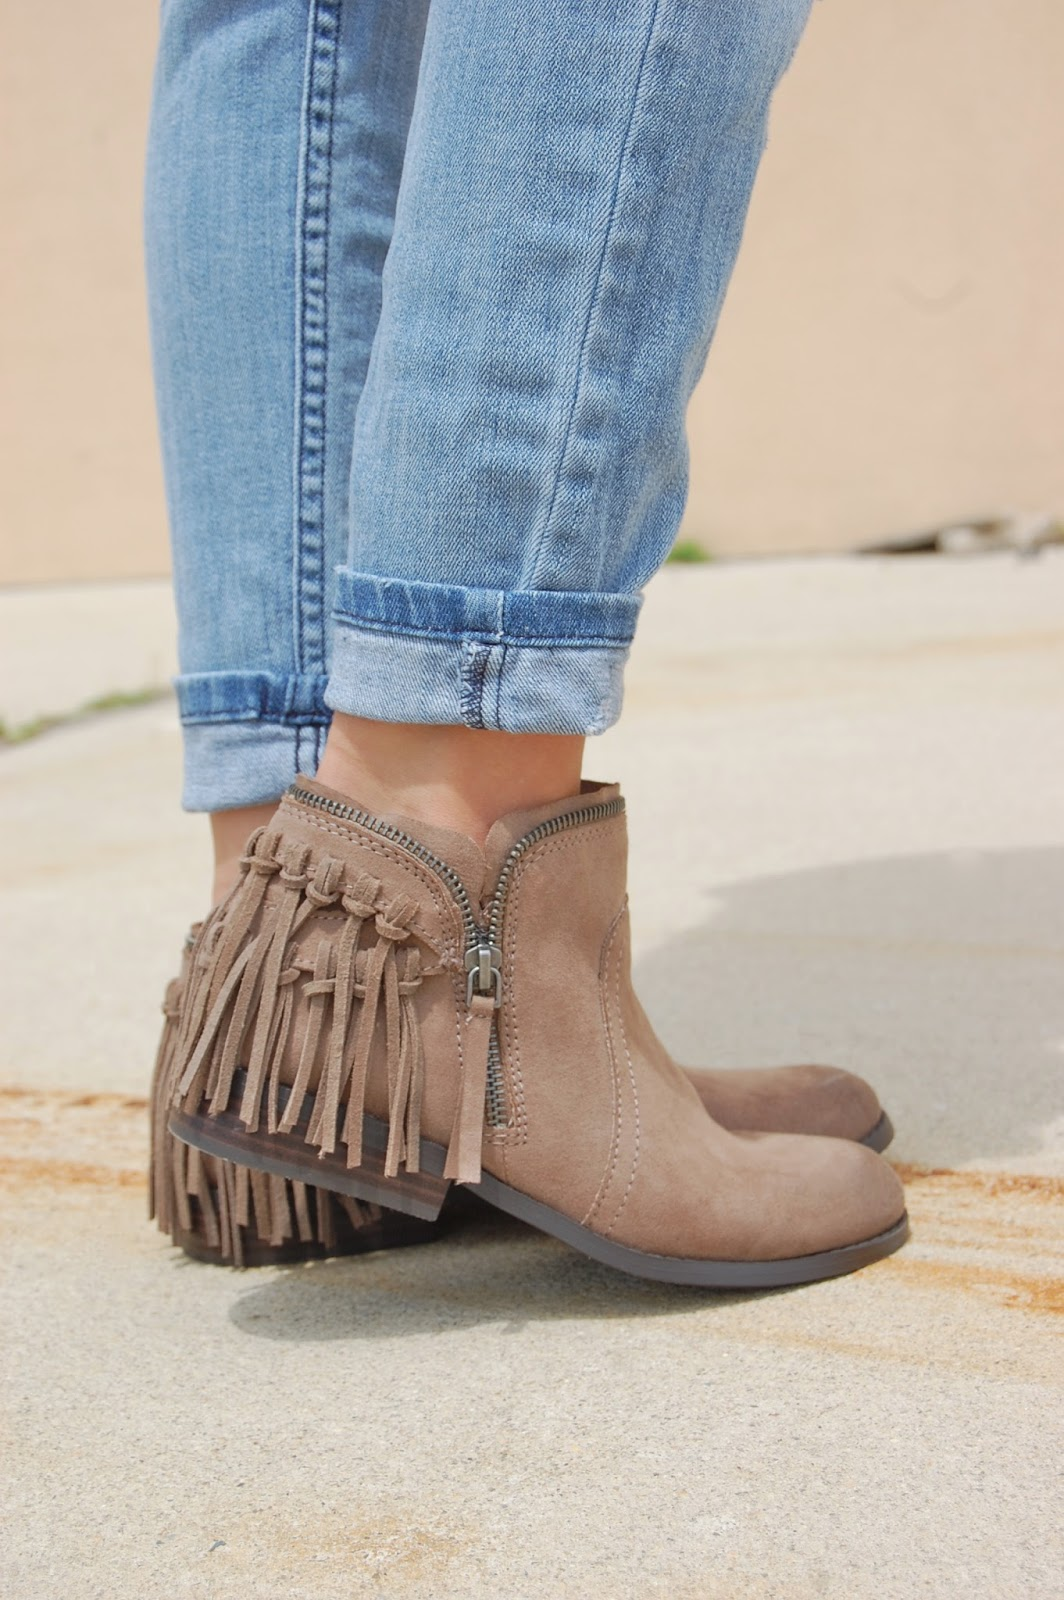 wearing a white tee, distressed boyfriend jeans, floppy hat and fringe Dolce Vita fringe ankle booties, casual look